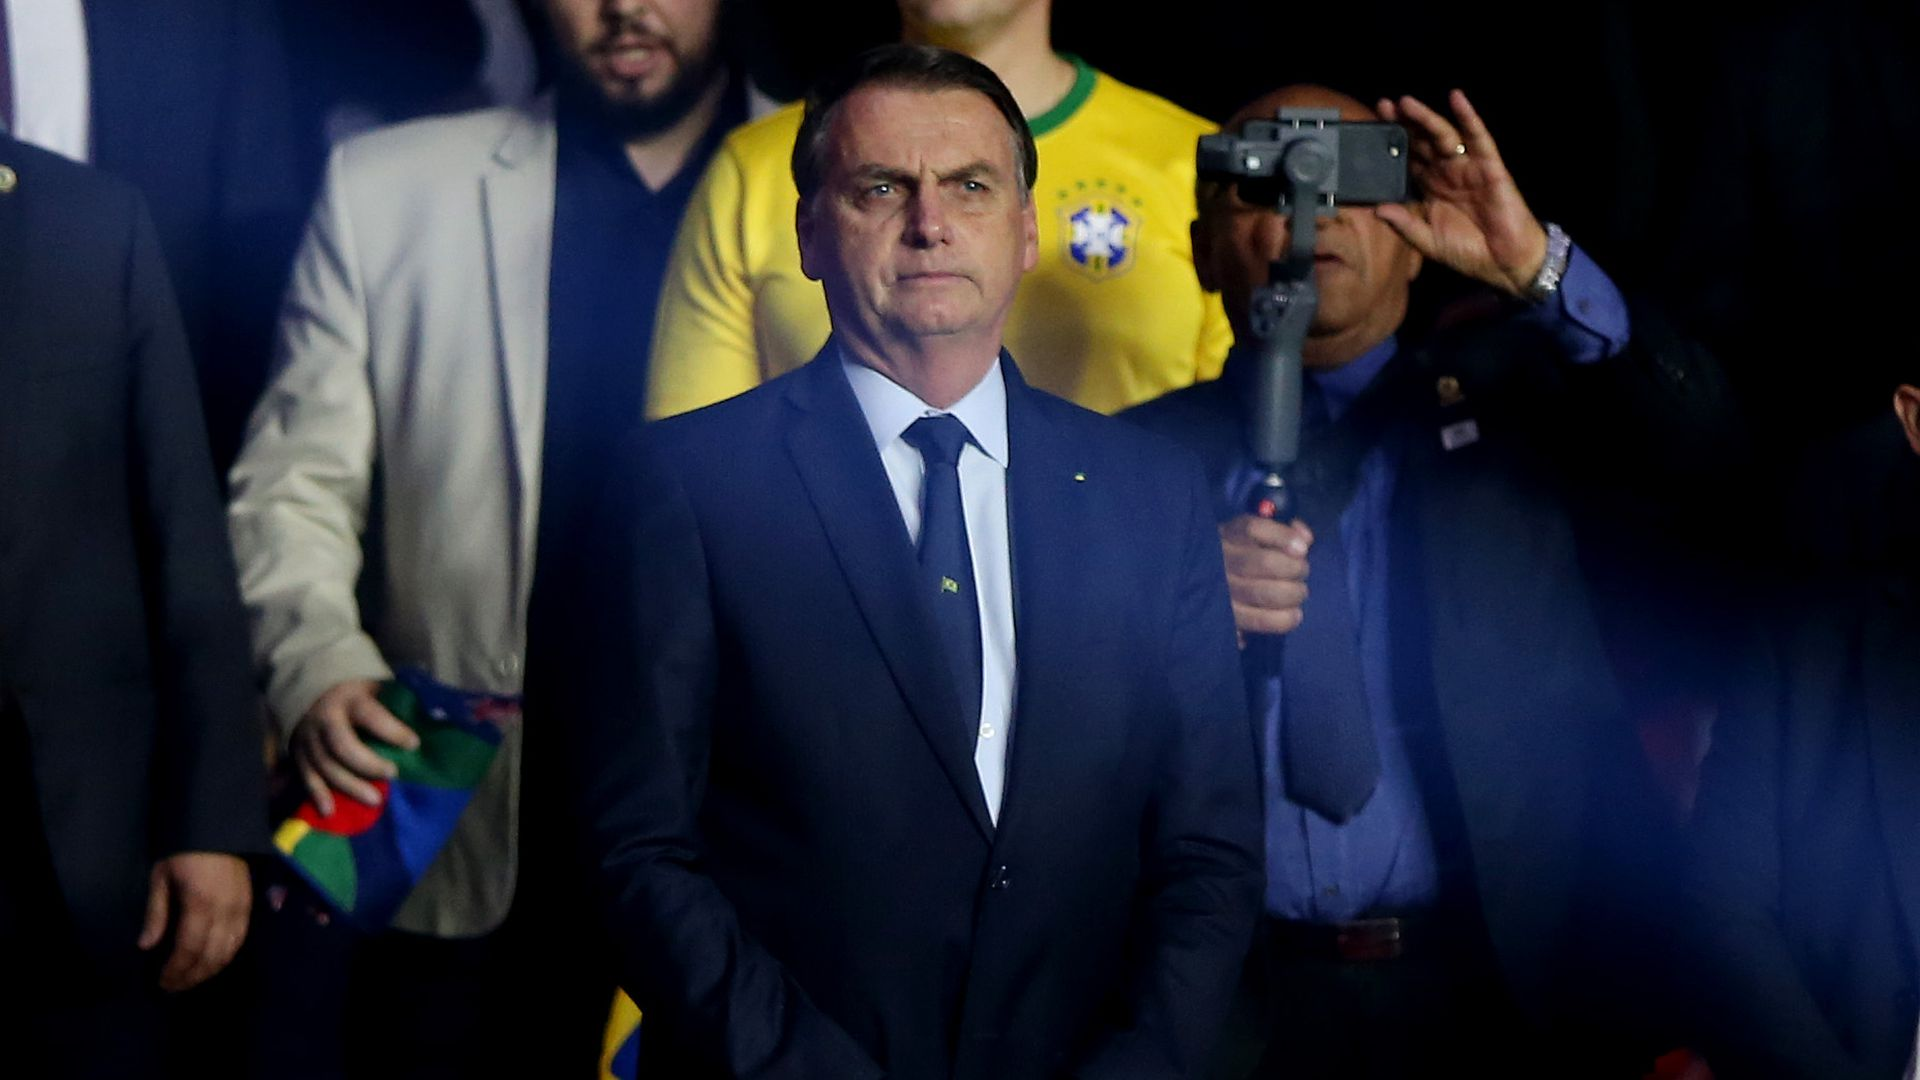 Brazilian Air Force officer traveling with Bolsonaro to G20 arrested for cocaine haul